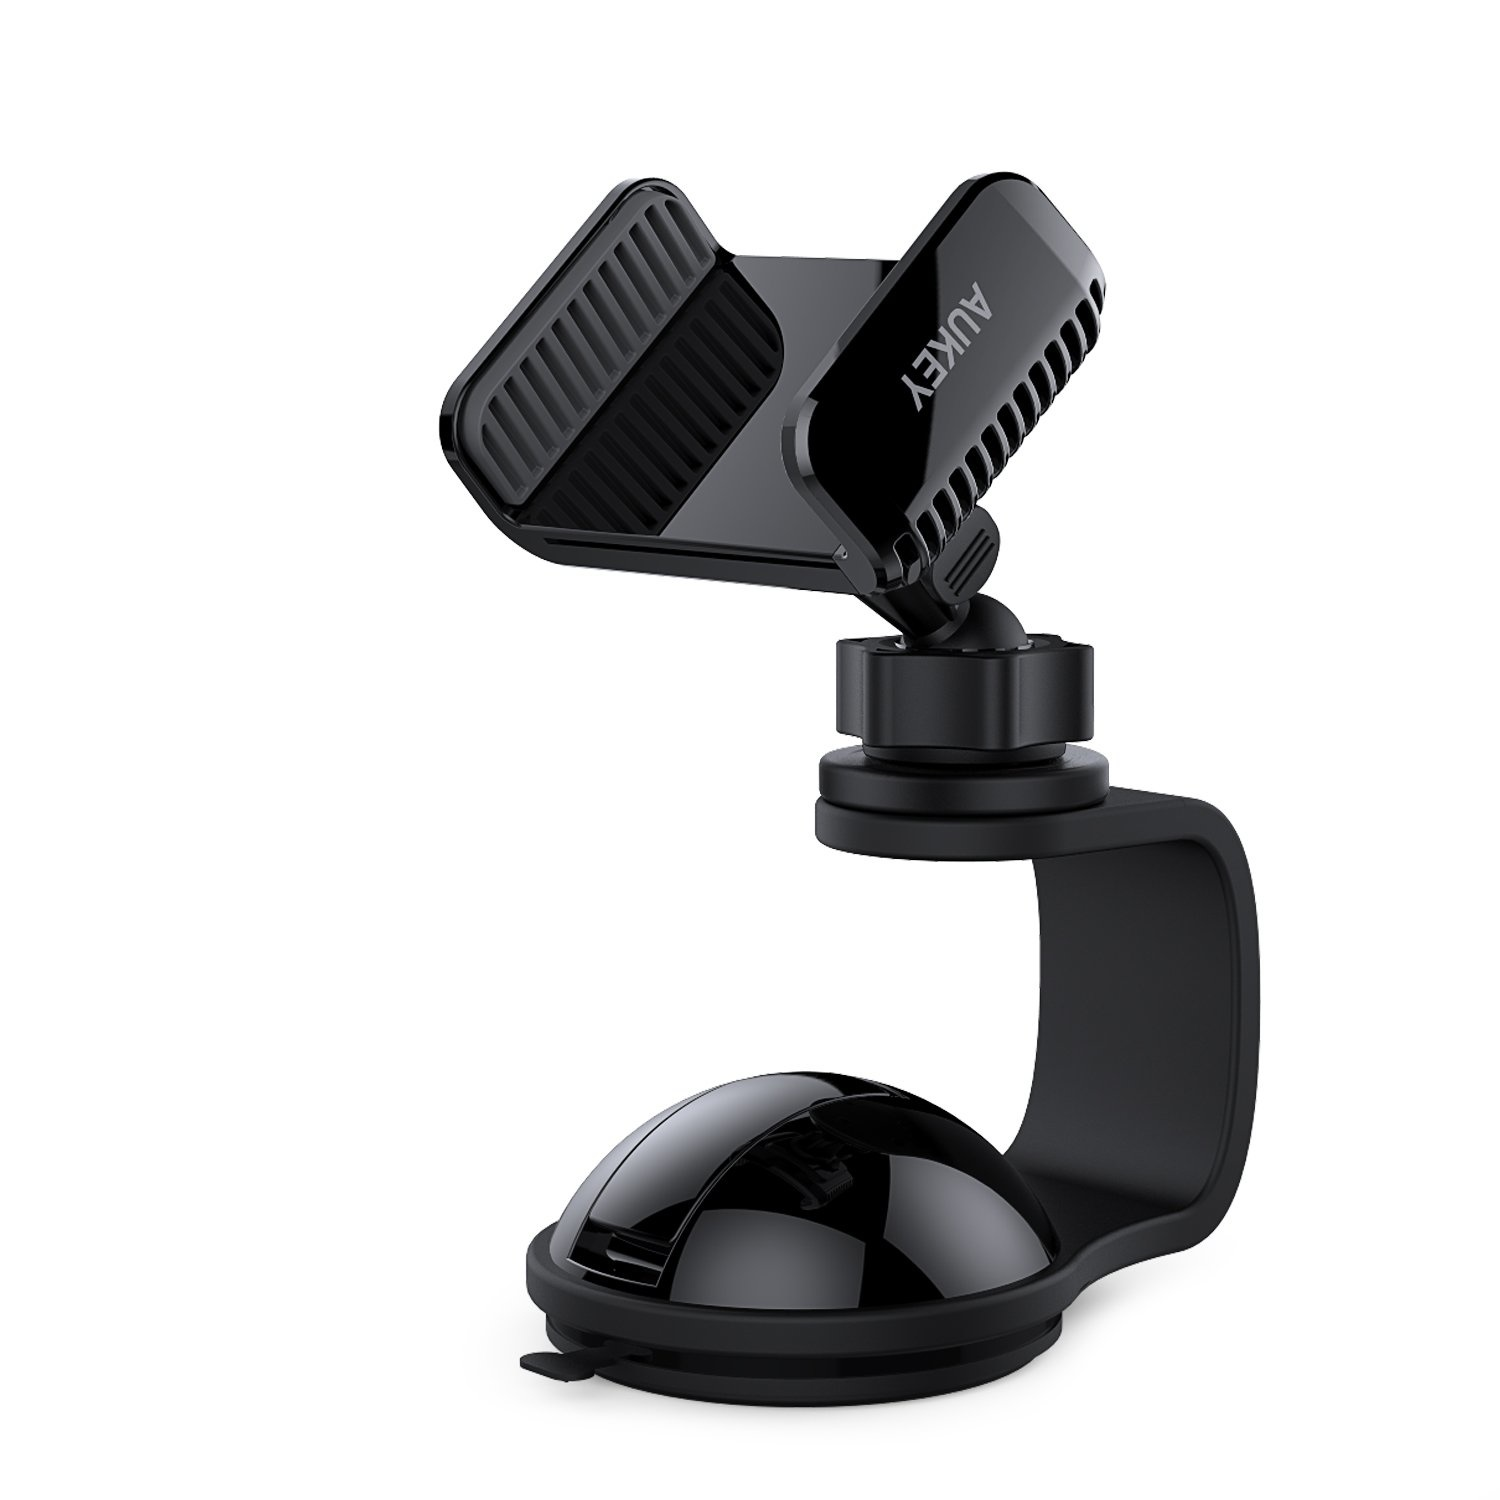 AUKEY Car Mount 360 Degree Rotating Windshield Dashboard Car Phone Holder Universal for GPS , iPhone 7 / 6 / 5 , Samsung and Other Android, Windows Smartphones